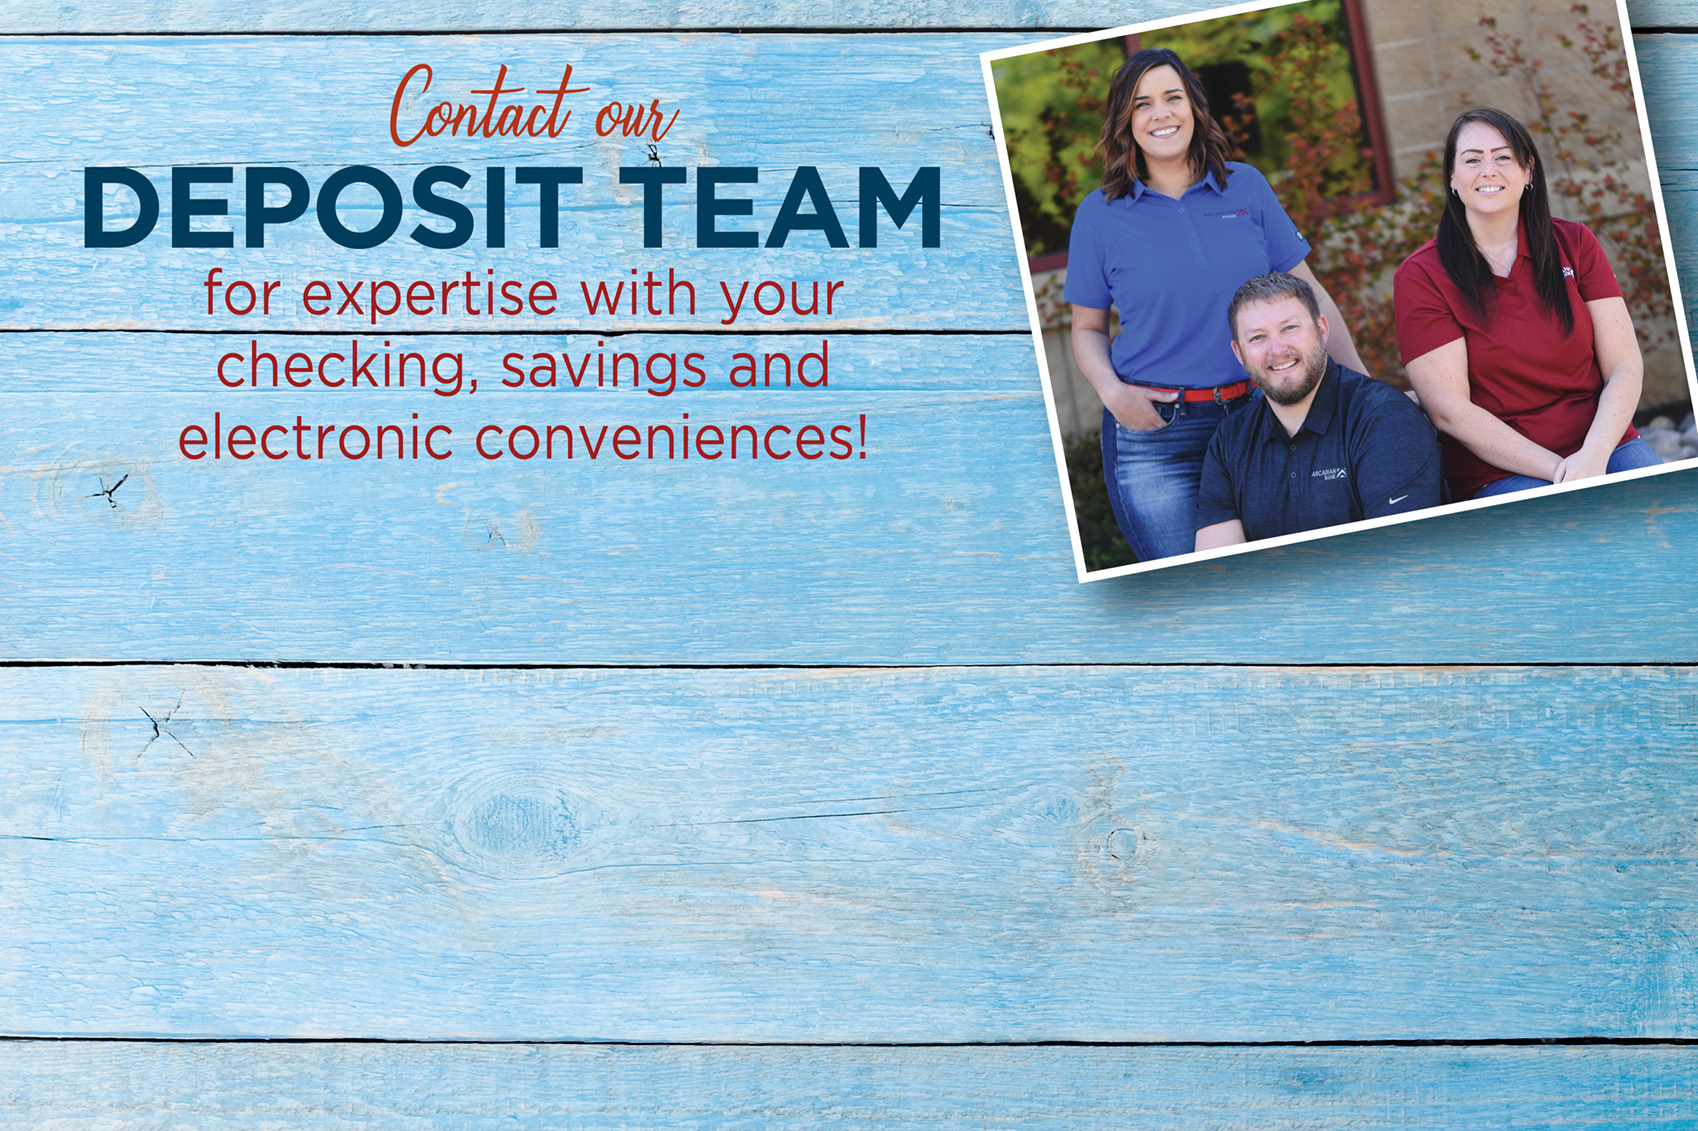 Contact our Deposit Team